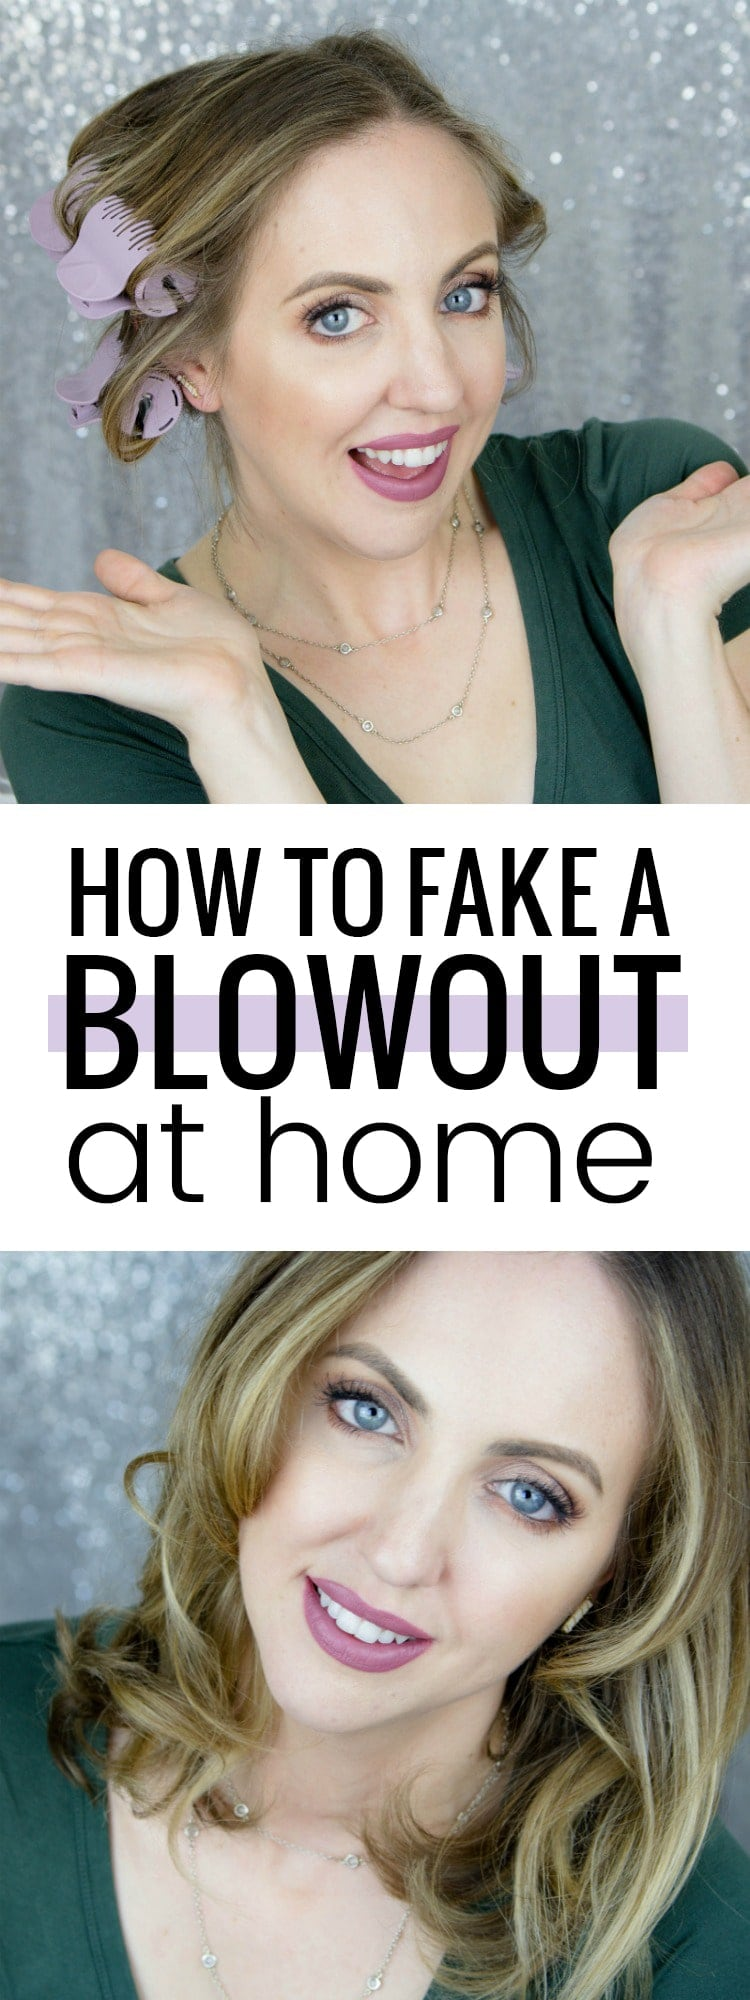 Come see how to fake a blowout at home! These bouncy curls are gorgeous and it can be done in no time flat!